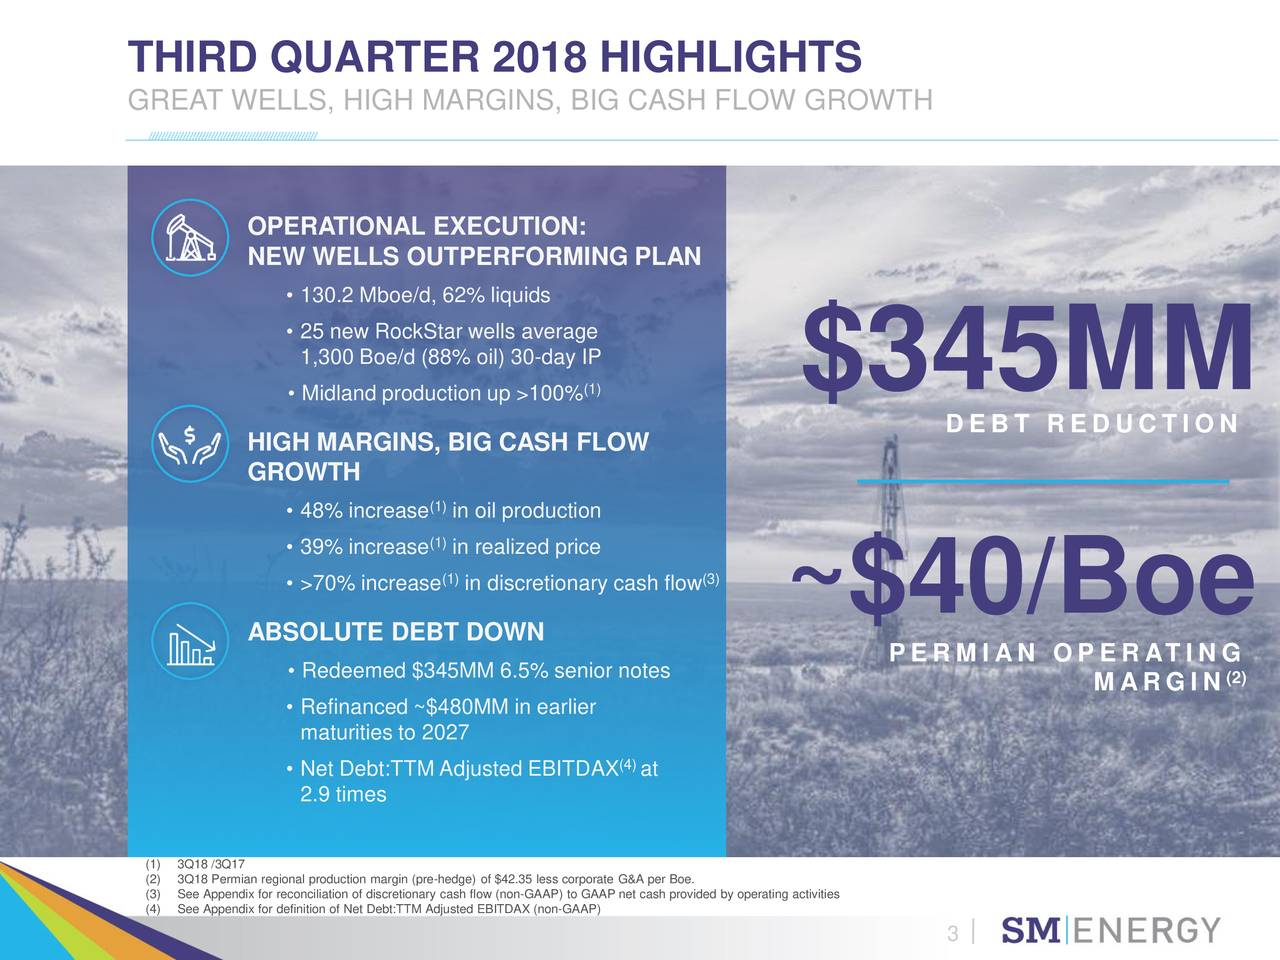 GREAT WELLS, HIGH MARGINS, BIG CASH FLOW GROWTH OPERATIONAL EXECUTION: NEW WELLS OUTPERFORMING PLAN • 130.2 Mboe/d, 62% liquids • 25 new RockStar wells average 1,300 Boe/d (88% oil) 30-day IP (1) $345MM • Midland production up >100% D E B T R E D U C T I O N HIGH MARGINS, BIG CASH FLOW GROWTH (1) • 48% increasein oil production • 39% increasein realized price (1) (3) • >70% increasein discretionary cash flow ~$40/Boe ABSOLUTE DEBT DOWN • Redeemed $345MM 6.5% senior notes P E R M I AN O P E R AT I N (2) M AR G I N • Refinanced ~$480MM in earlier maturities to 2027 • Net Debt:TTM Adjusted EBITDAat 2.9 times (1)3Q18 /3Q17 (3)See Appendix for reconciliation of discretionary cash flow (non-GAAP) to GAAP net cash provided by operating activities (4)See Appendix for definition of Net Debt:TTM Adjusted EBITDAX (non-GAAP) 3